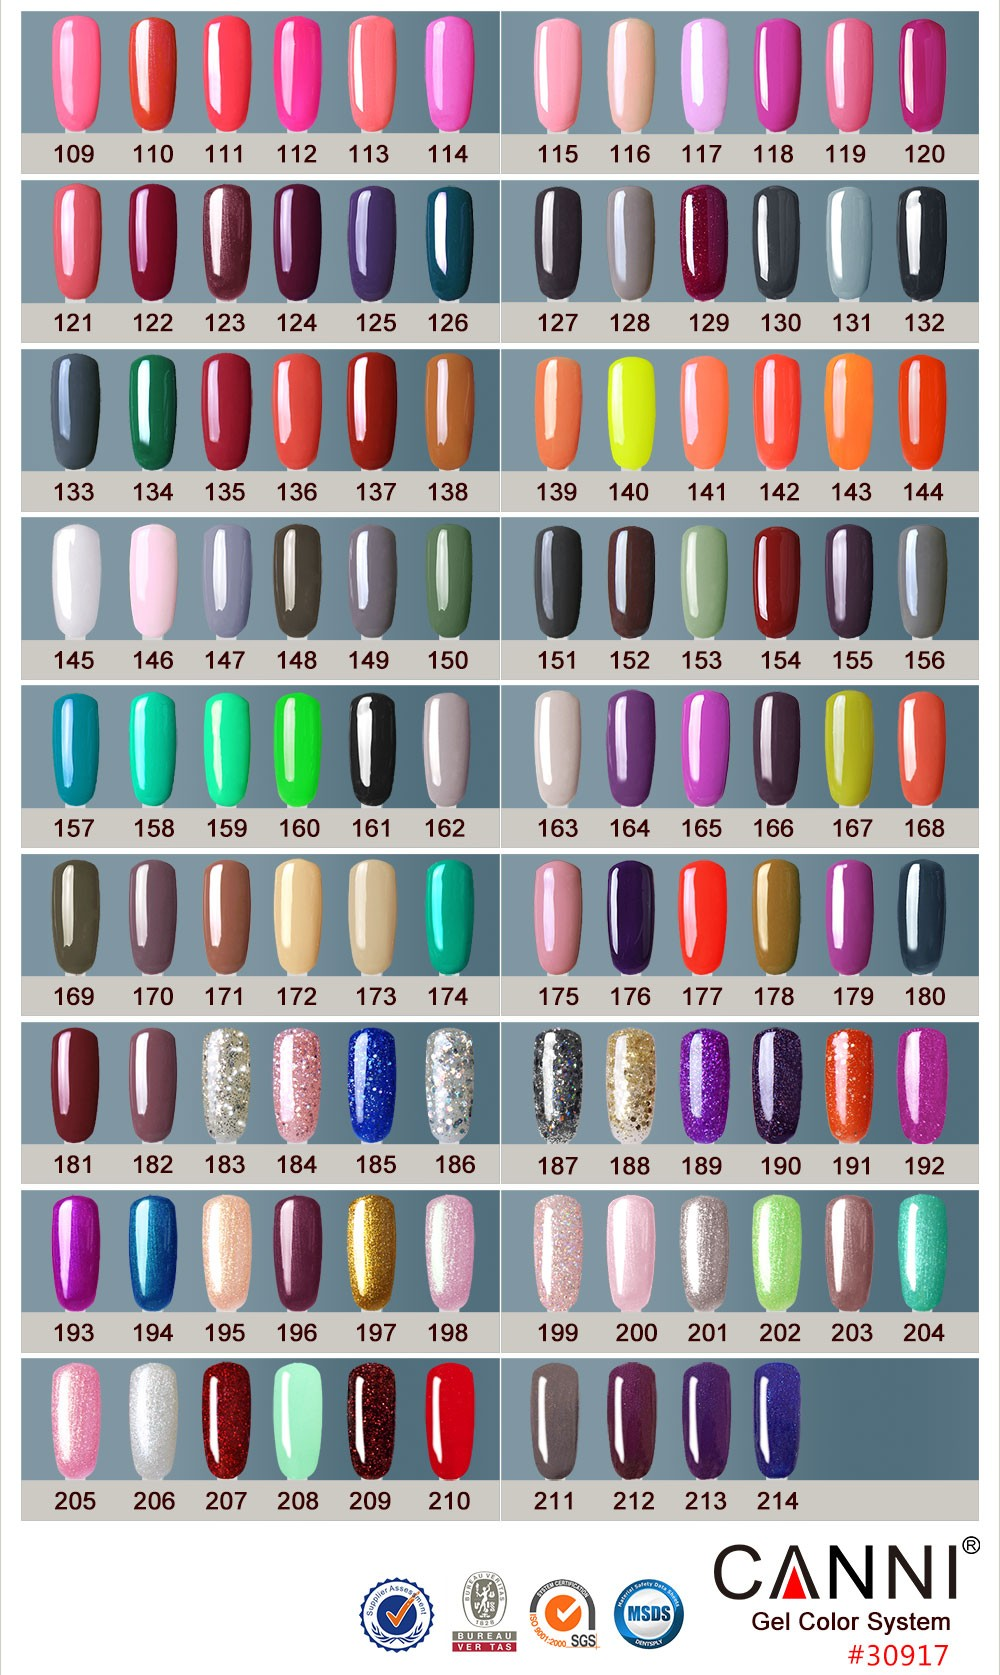 30917a Hot Sale In Russia 7.3ml Canni Gel Lacquers Nail Polish 239 ...